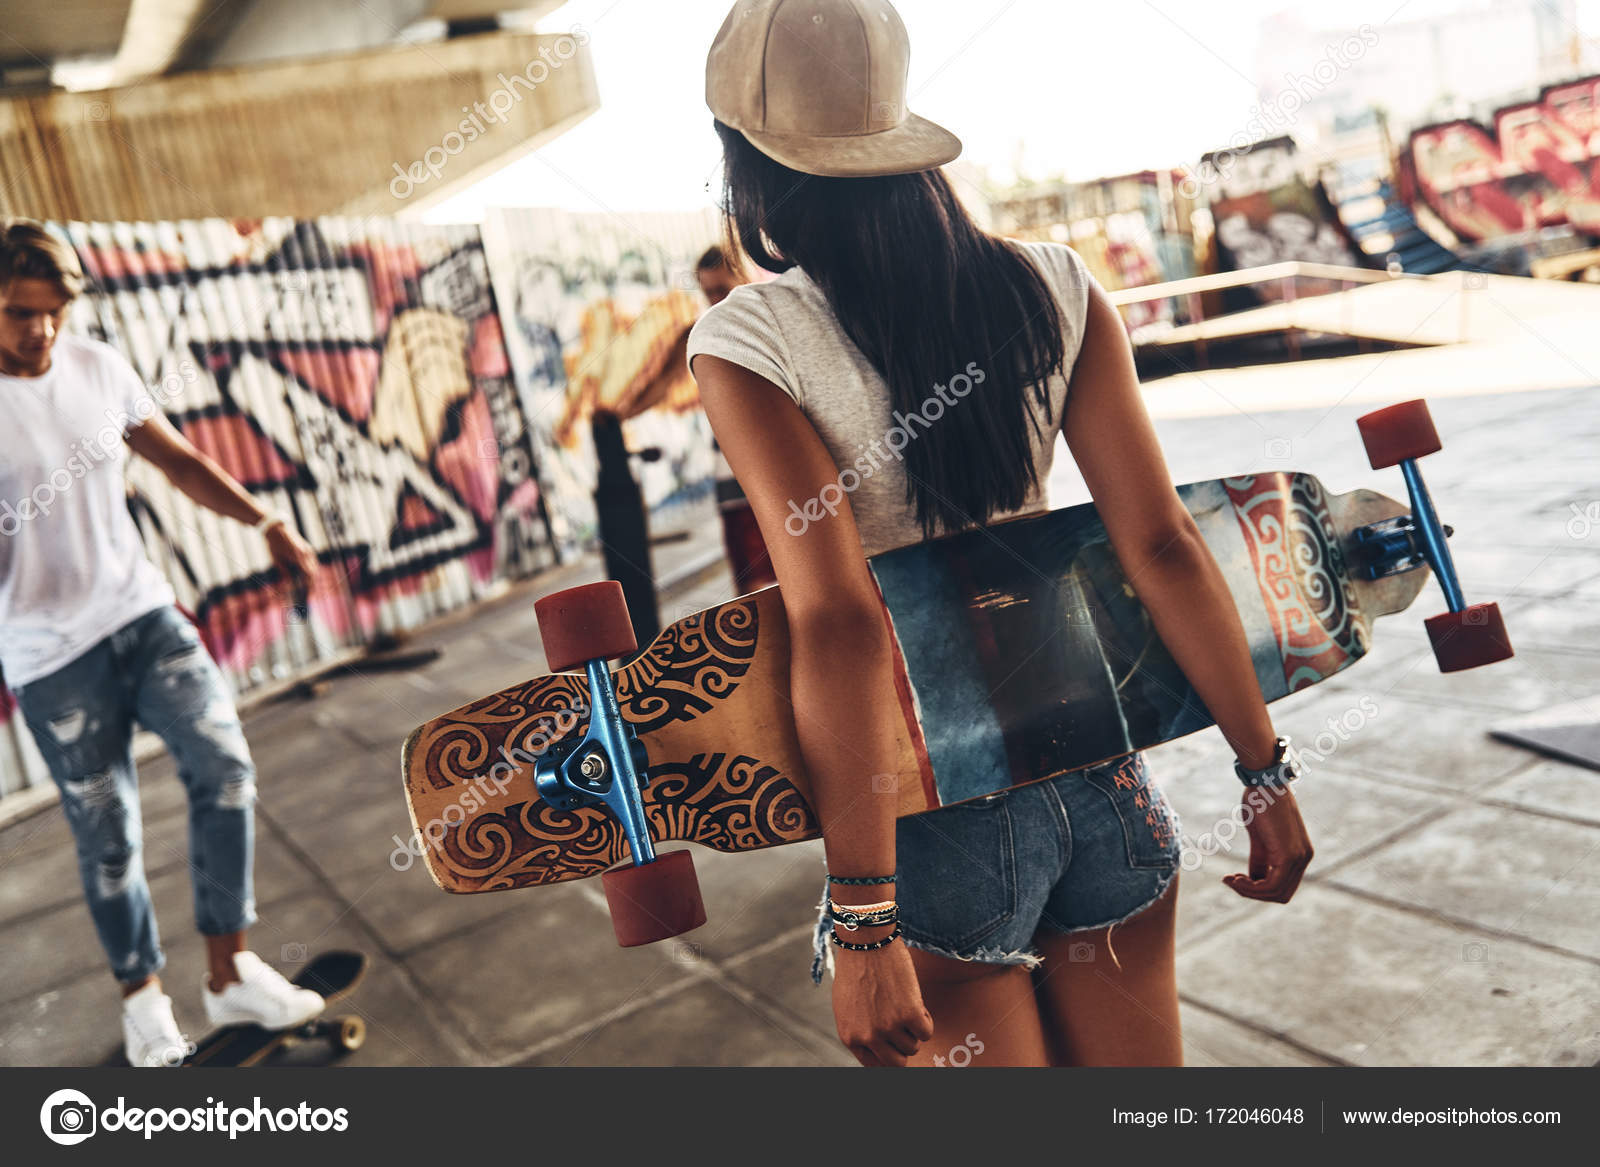 skater girl with friend — Stock Photo © gstockstudio  172046048 af50e0748